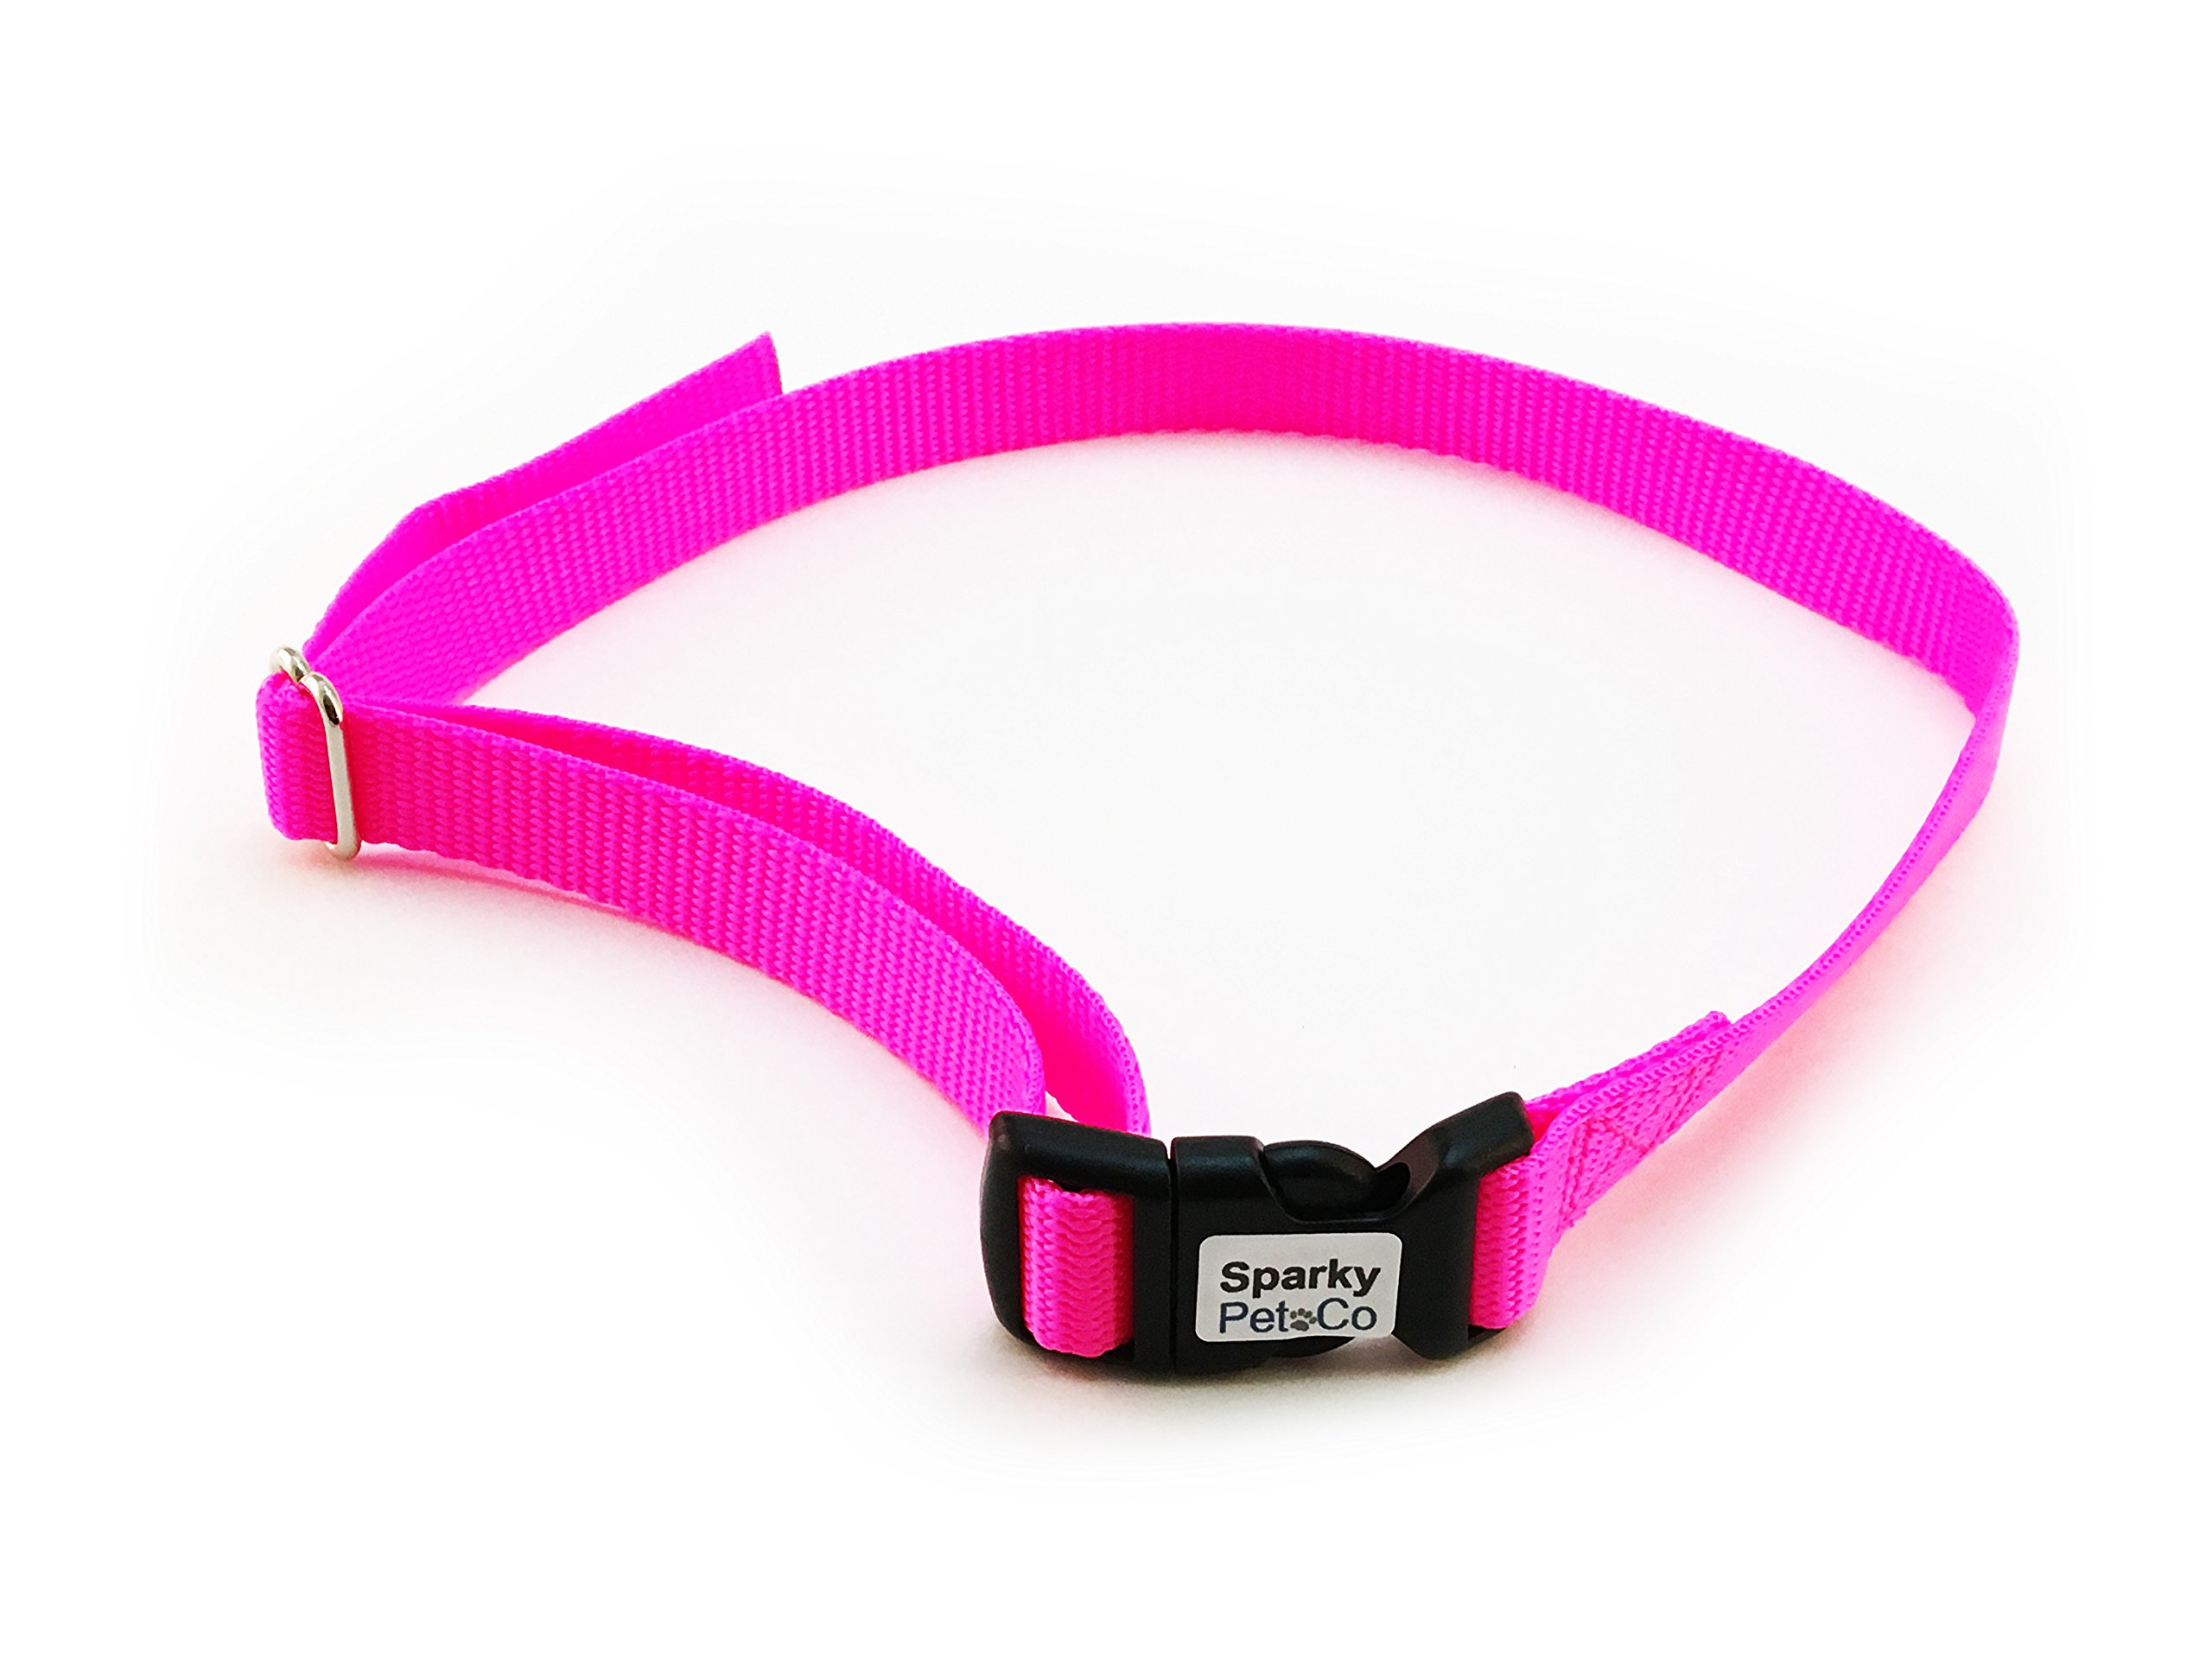 Sparky PetCo Dog Fence Receiver Heavy Duty 3/4 SOLID No Hole Nylon Replacement Strap, Neon Pink